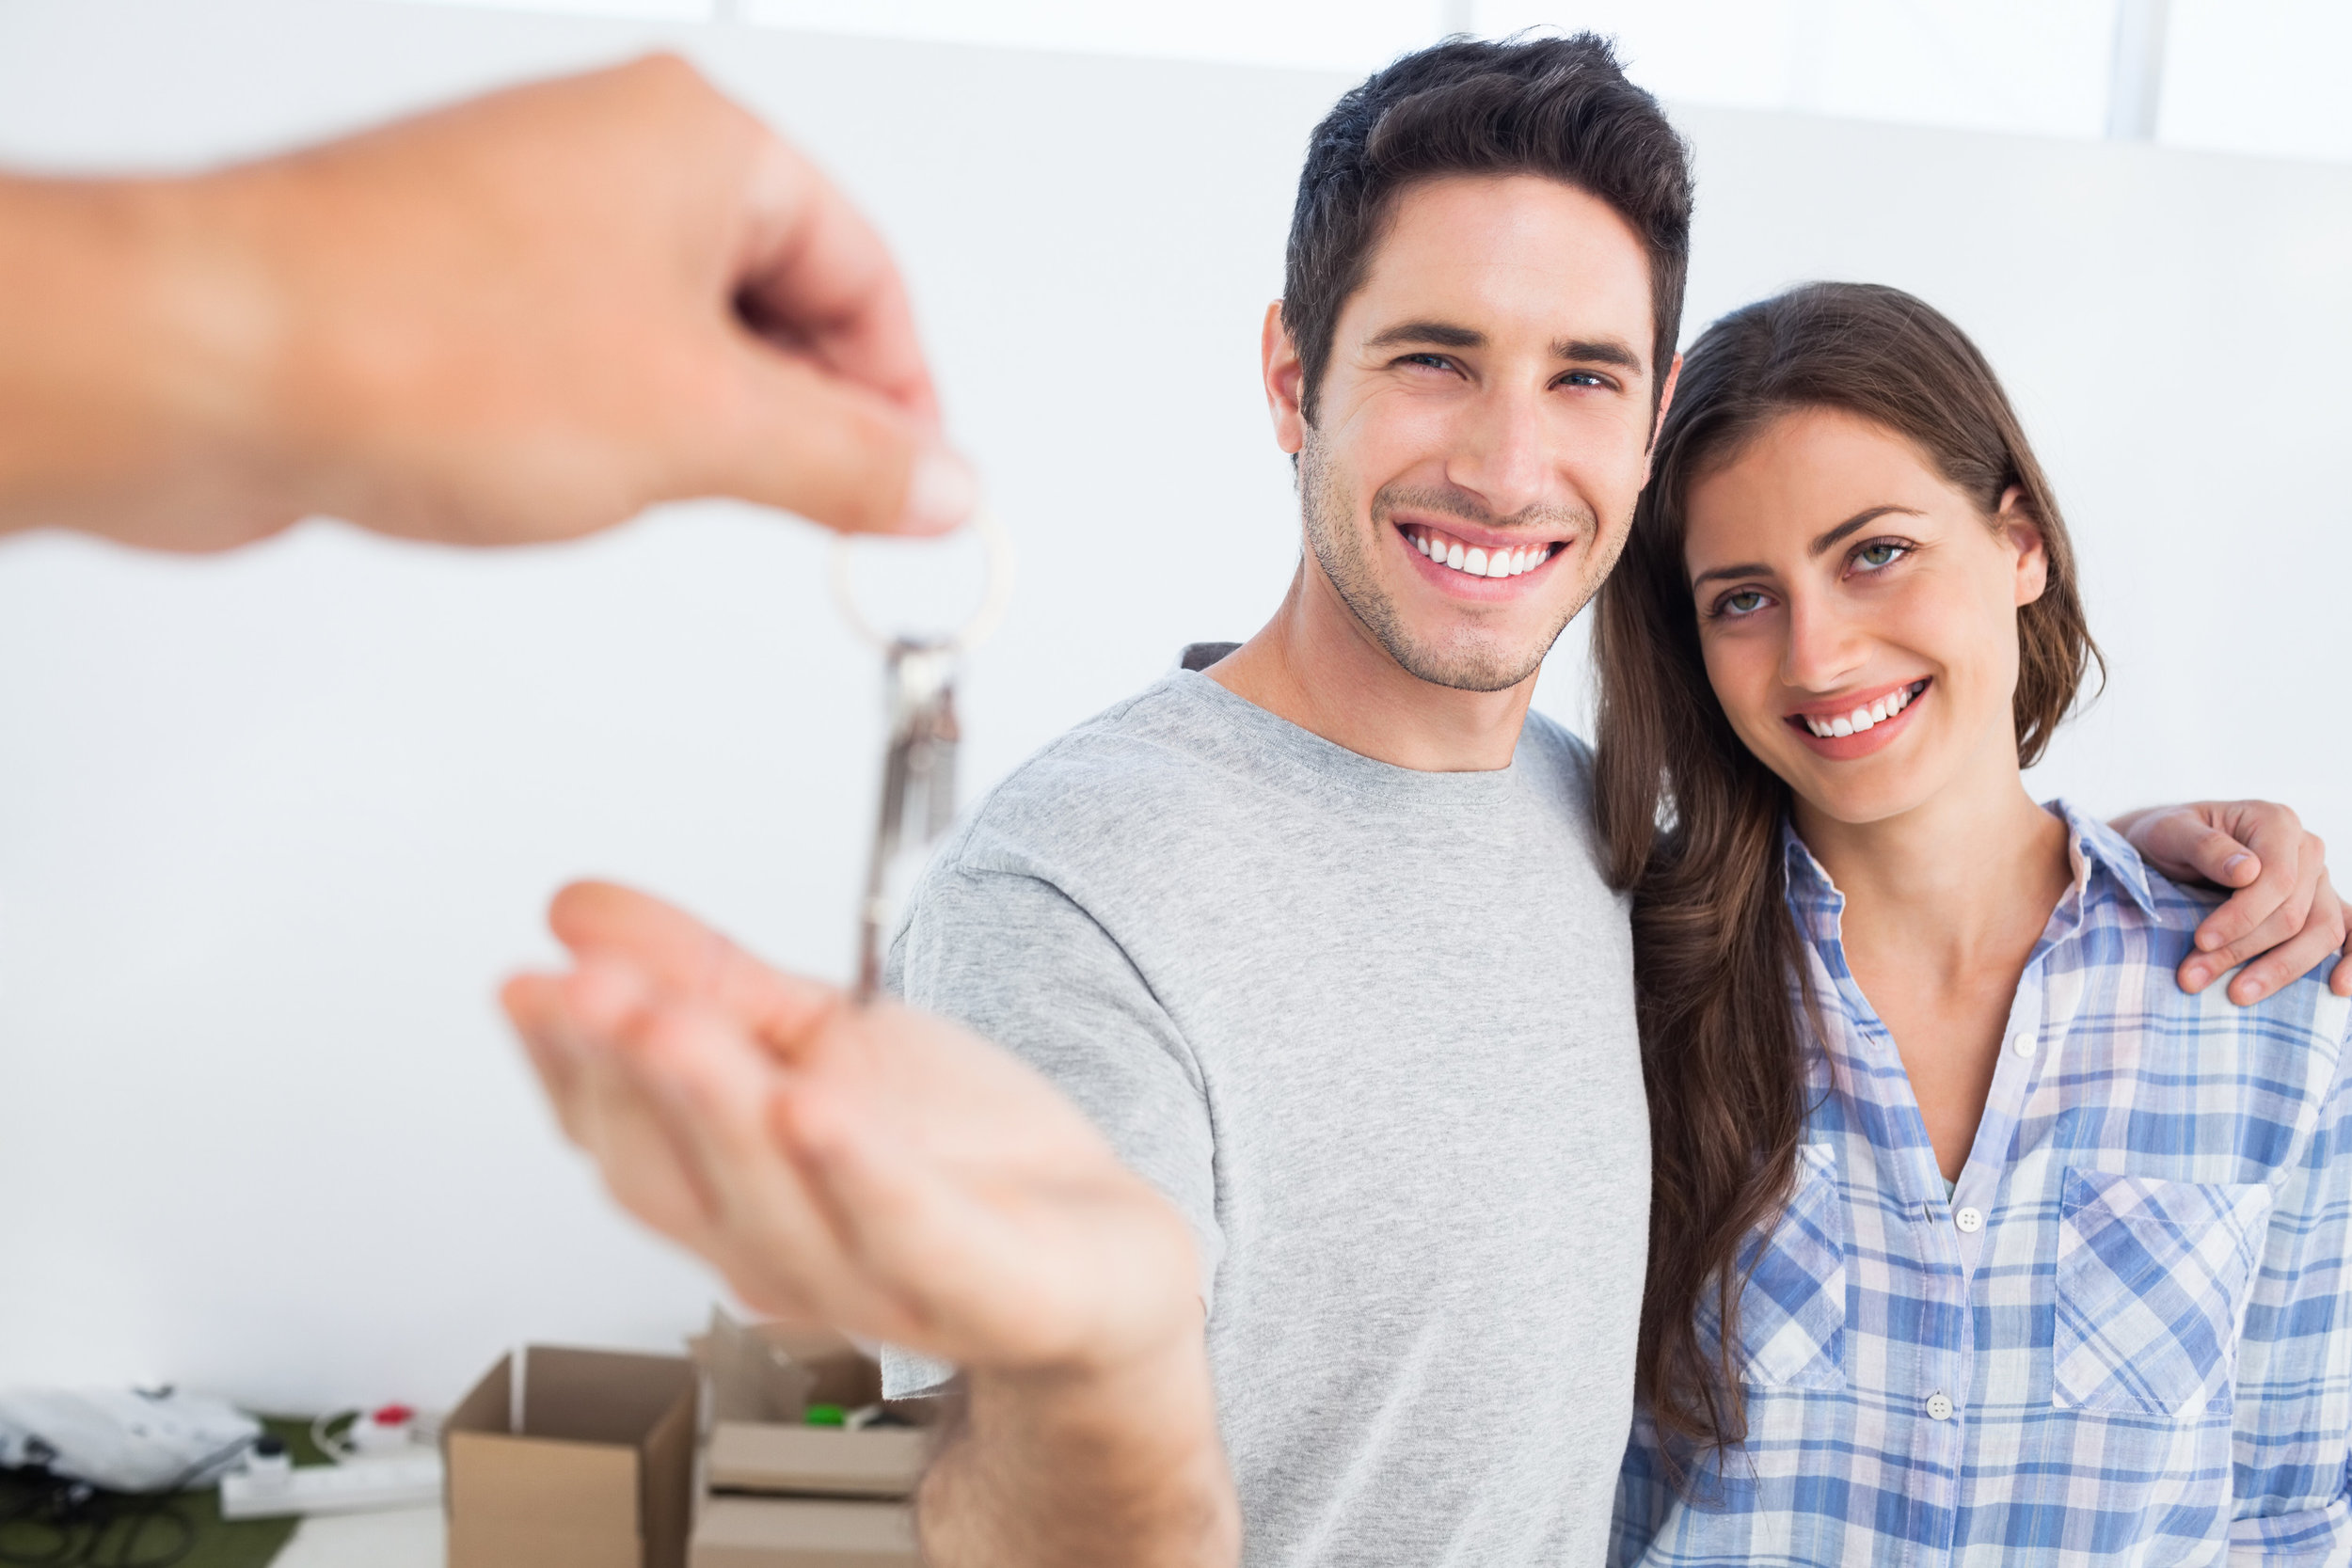 These buyer tips will help in your home buying process